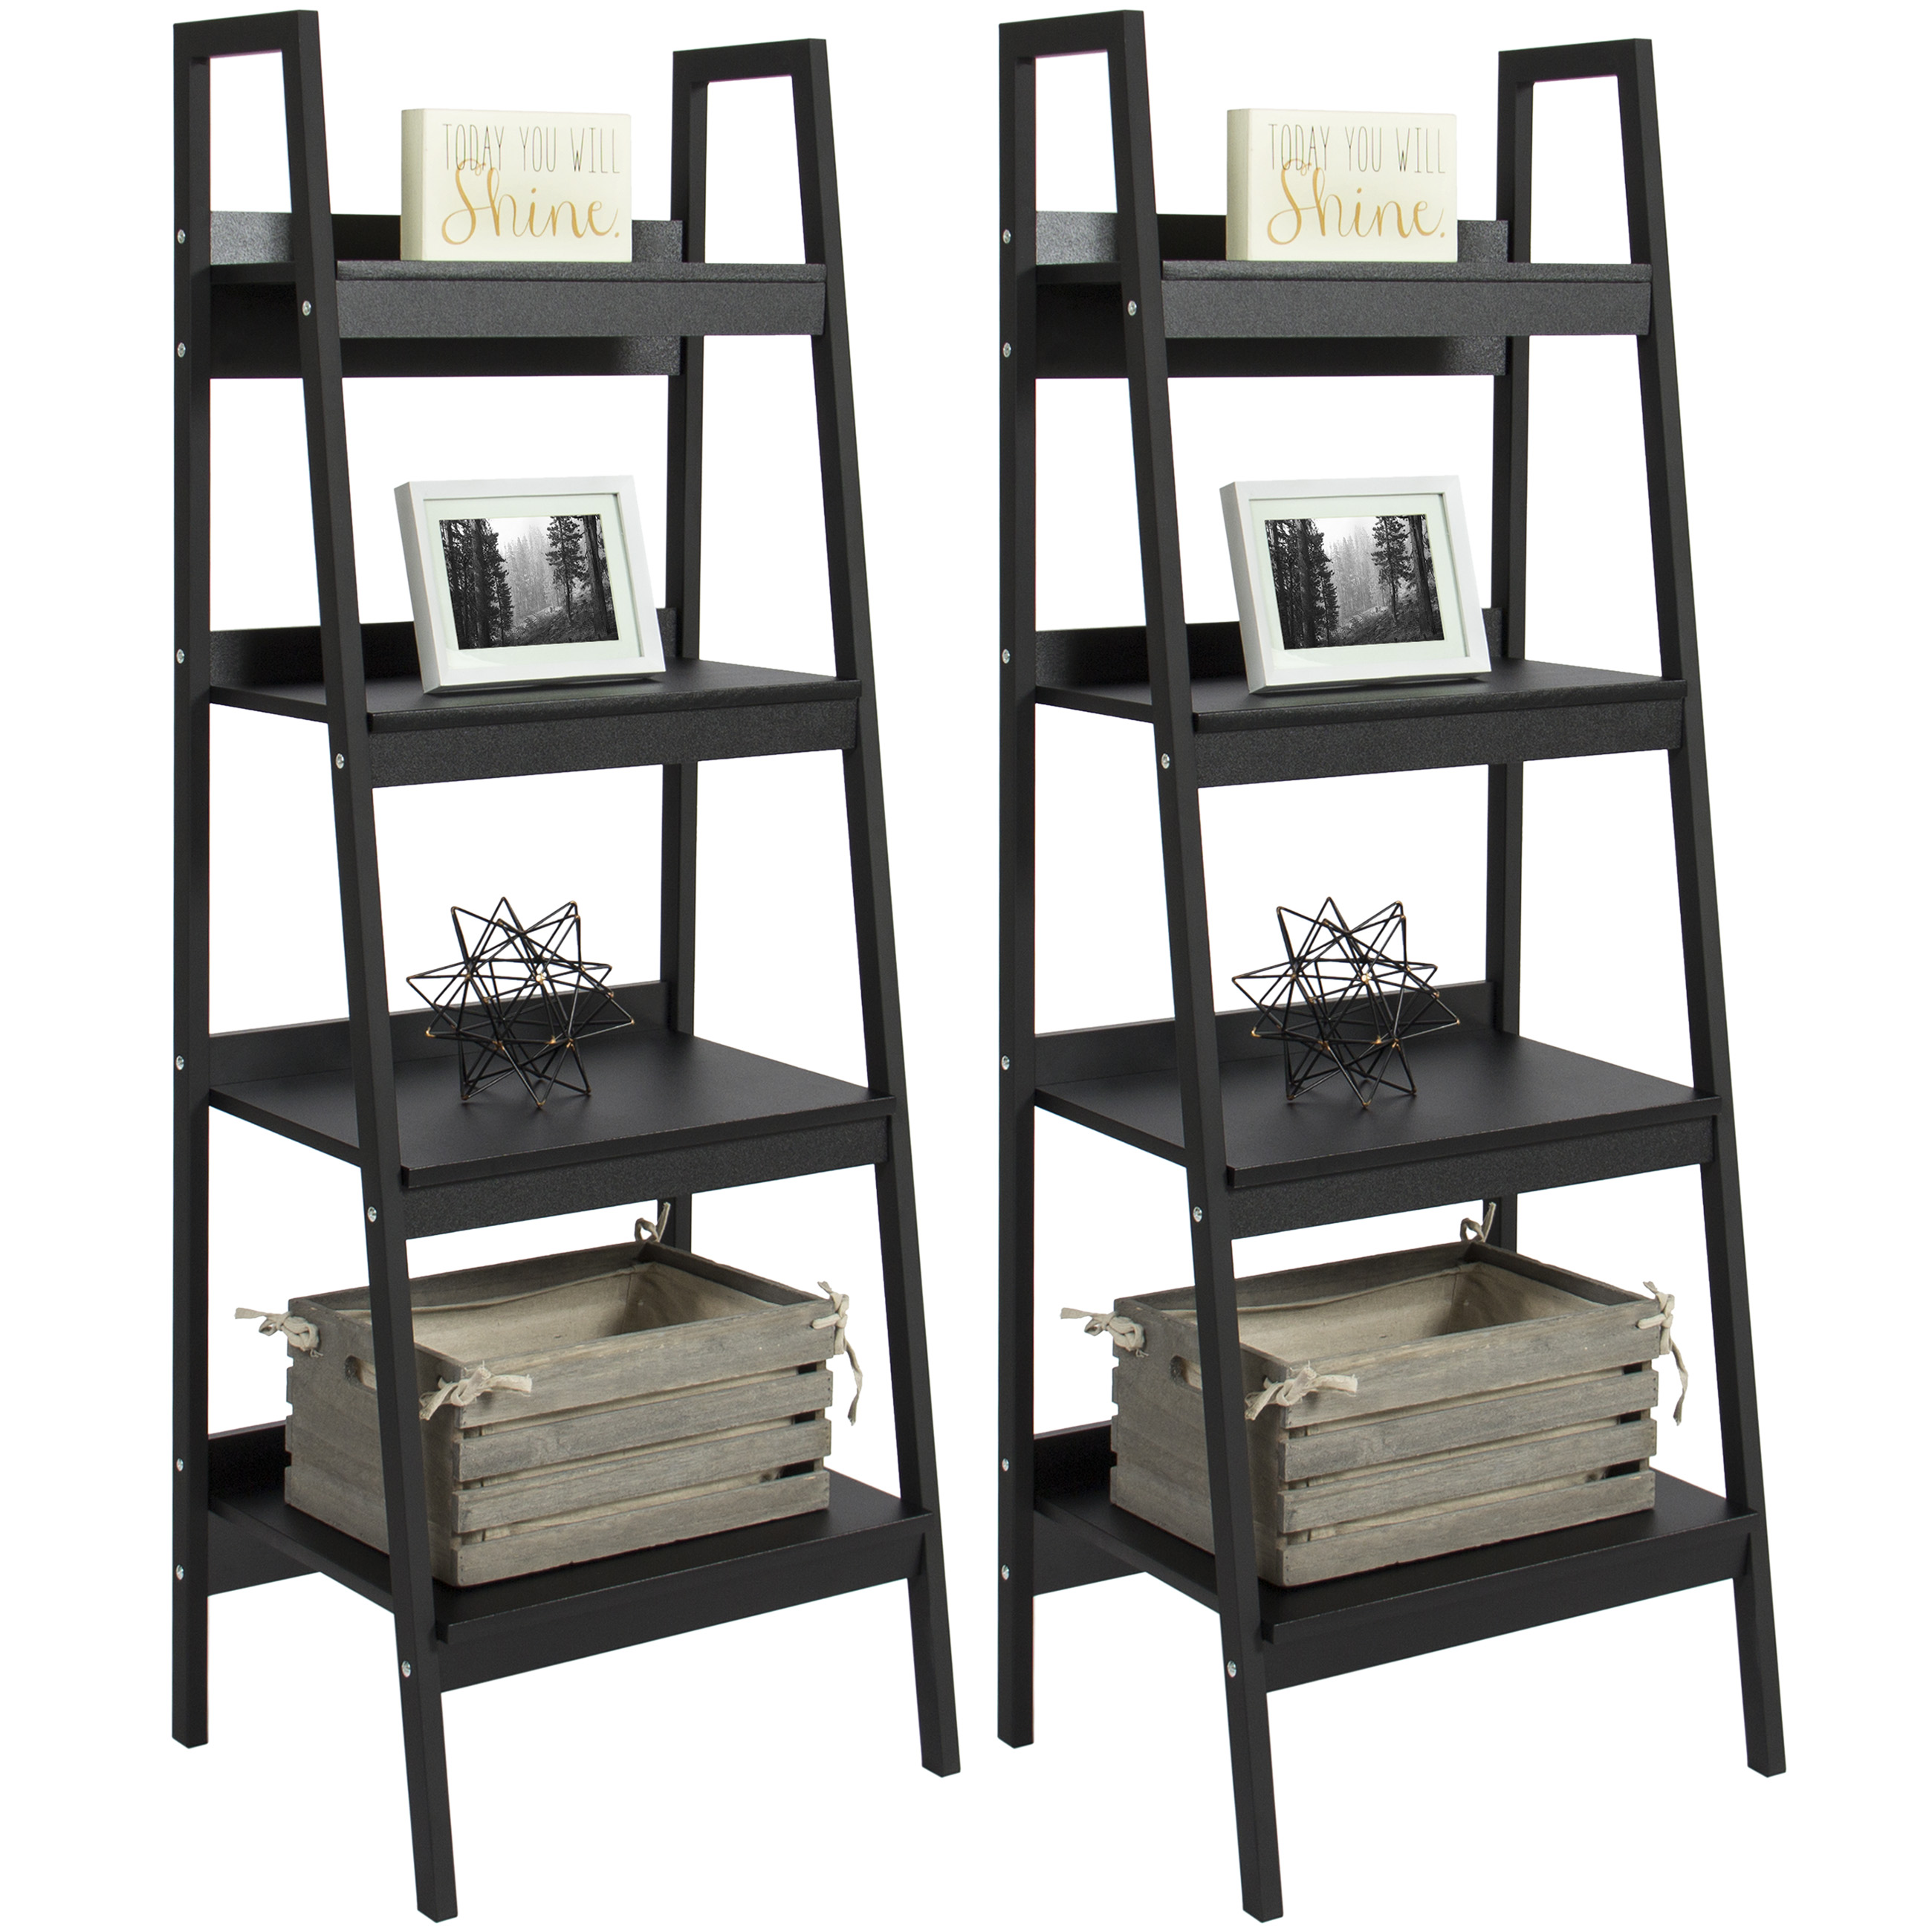 Best Choice Products Furniture Set Pair of 4-Shelf Ladder Bookcases- Black